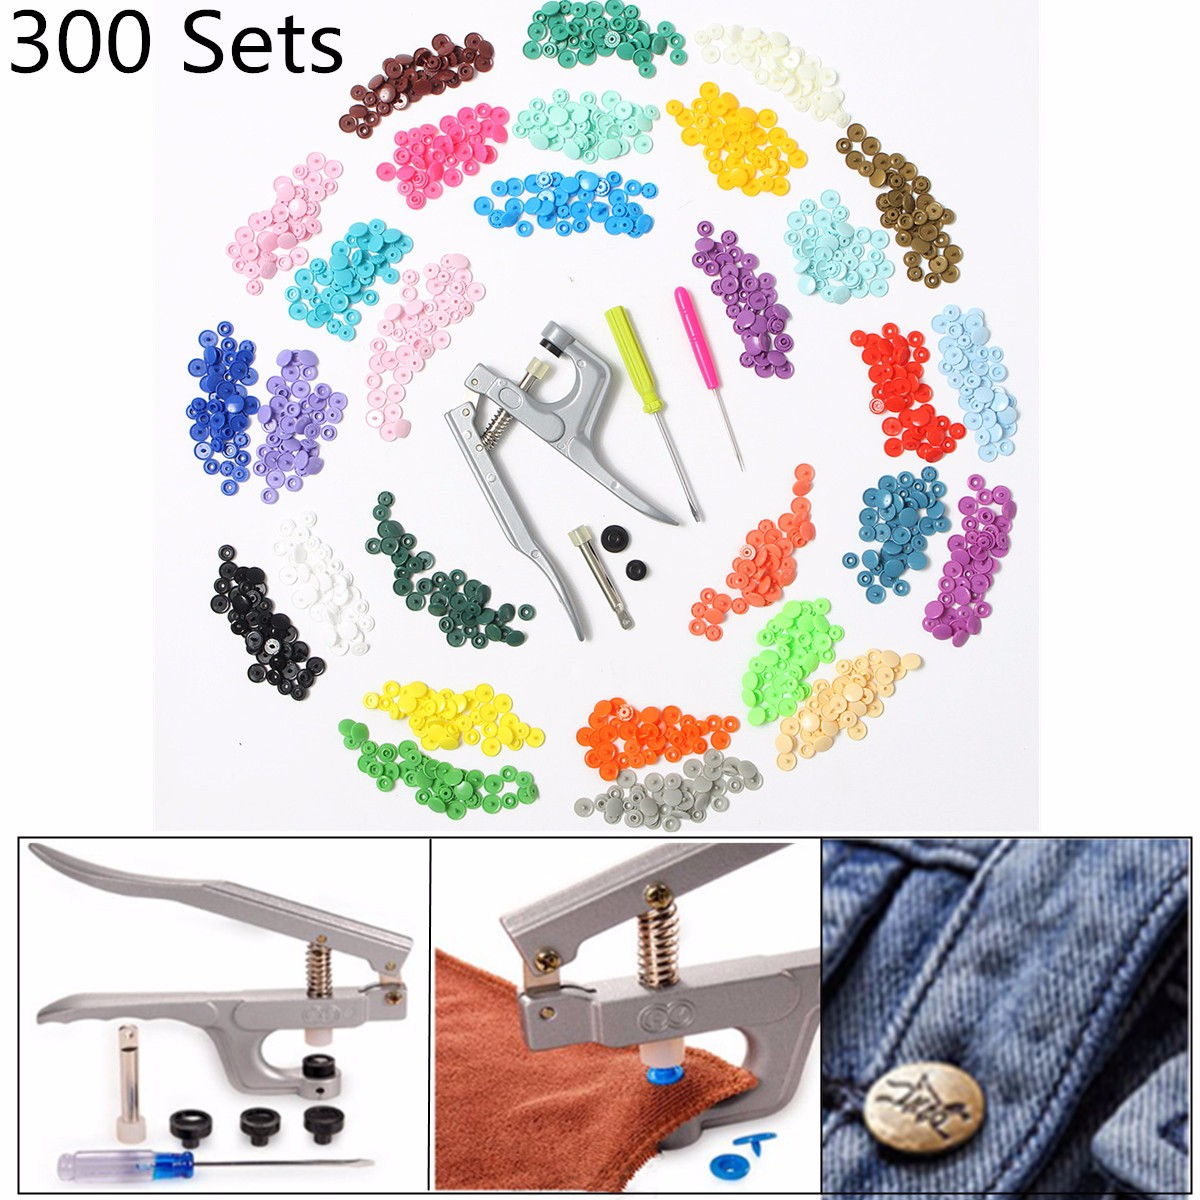 Hot Sale 300 Sets 10 Colors KAM Snaps T5 Snap Starter Plastic Poppers Fasteners +1 Pliers For Sewing Handmade DIY Cloth Suplies